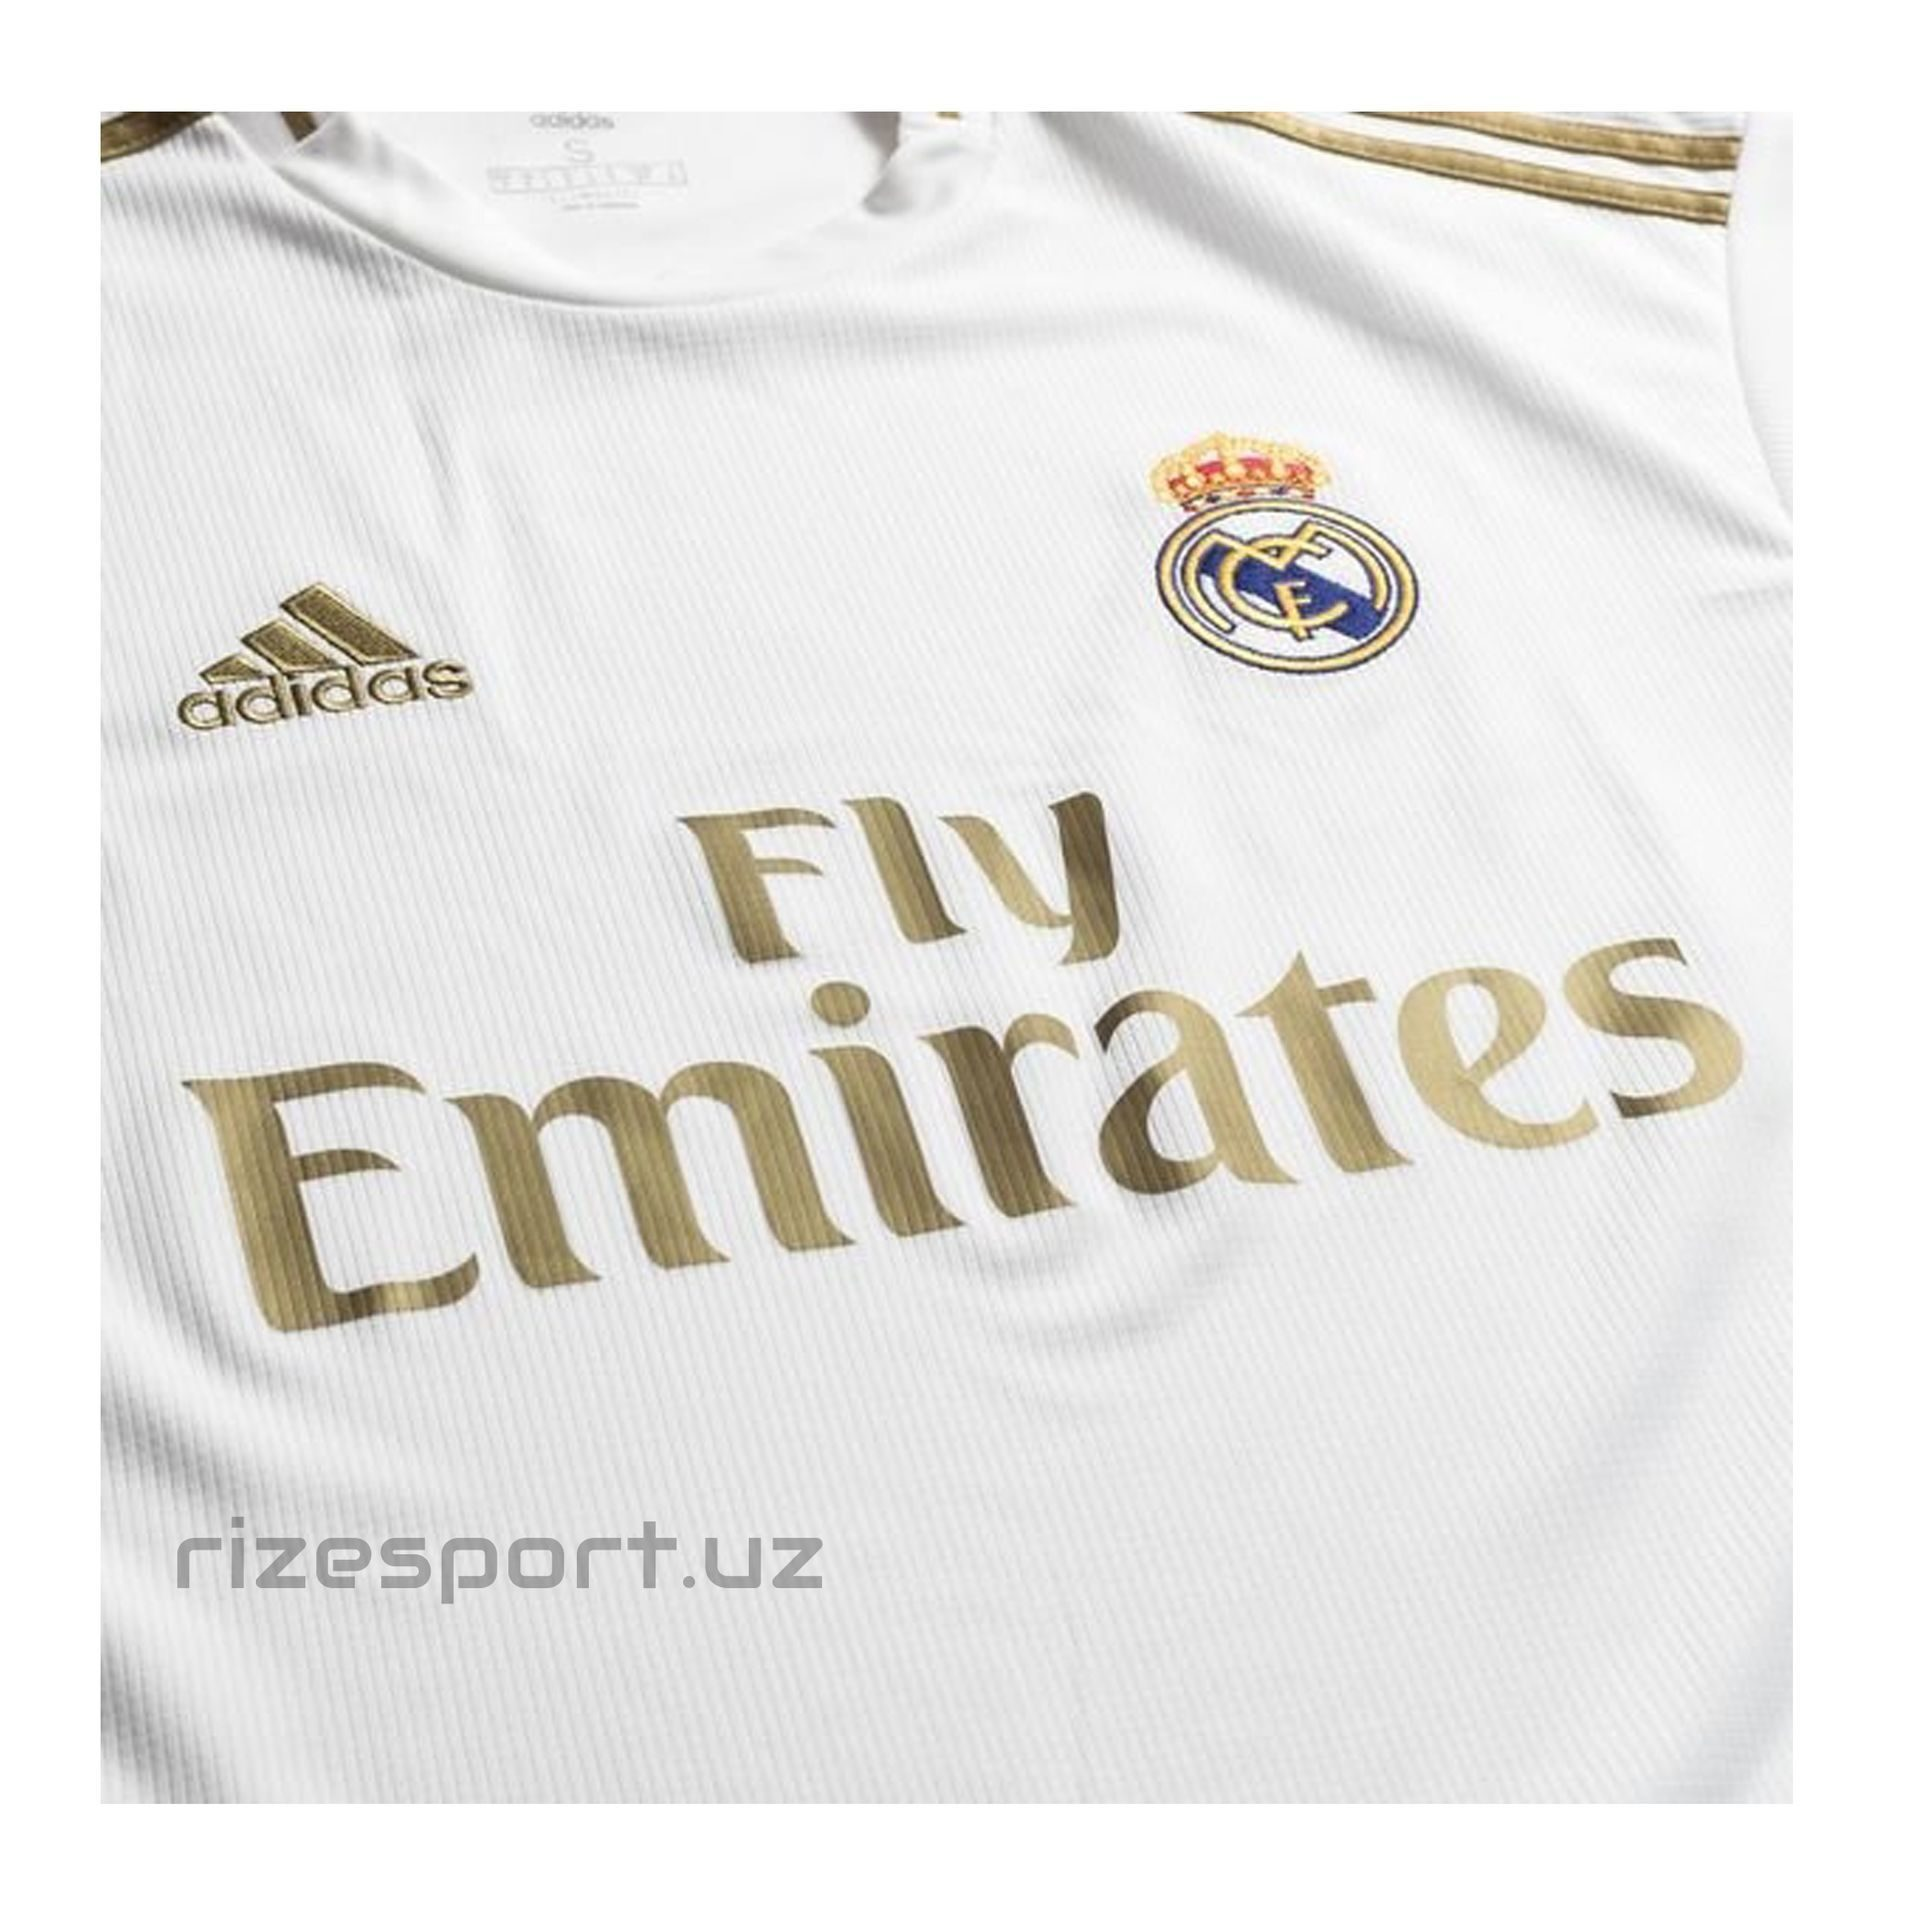 Real Madrid 5 1400pxs